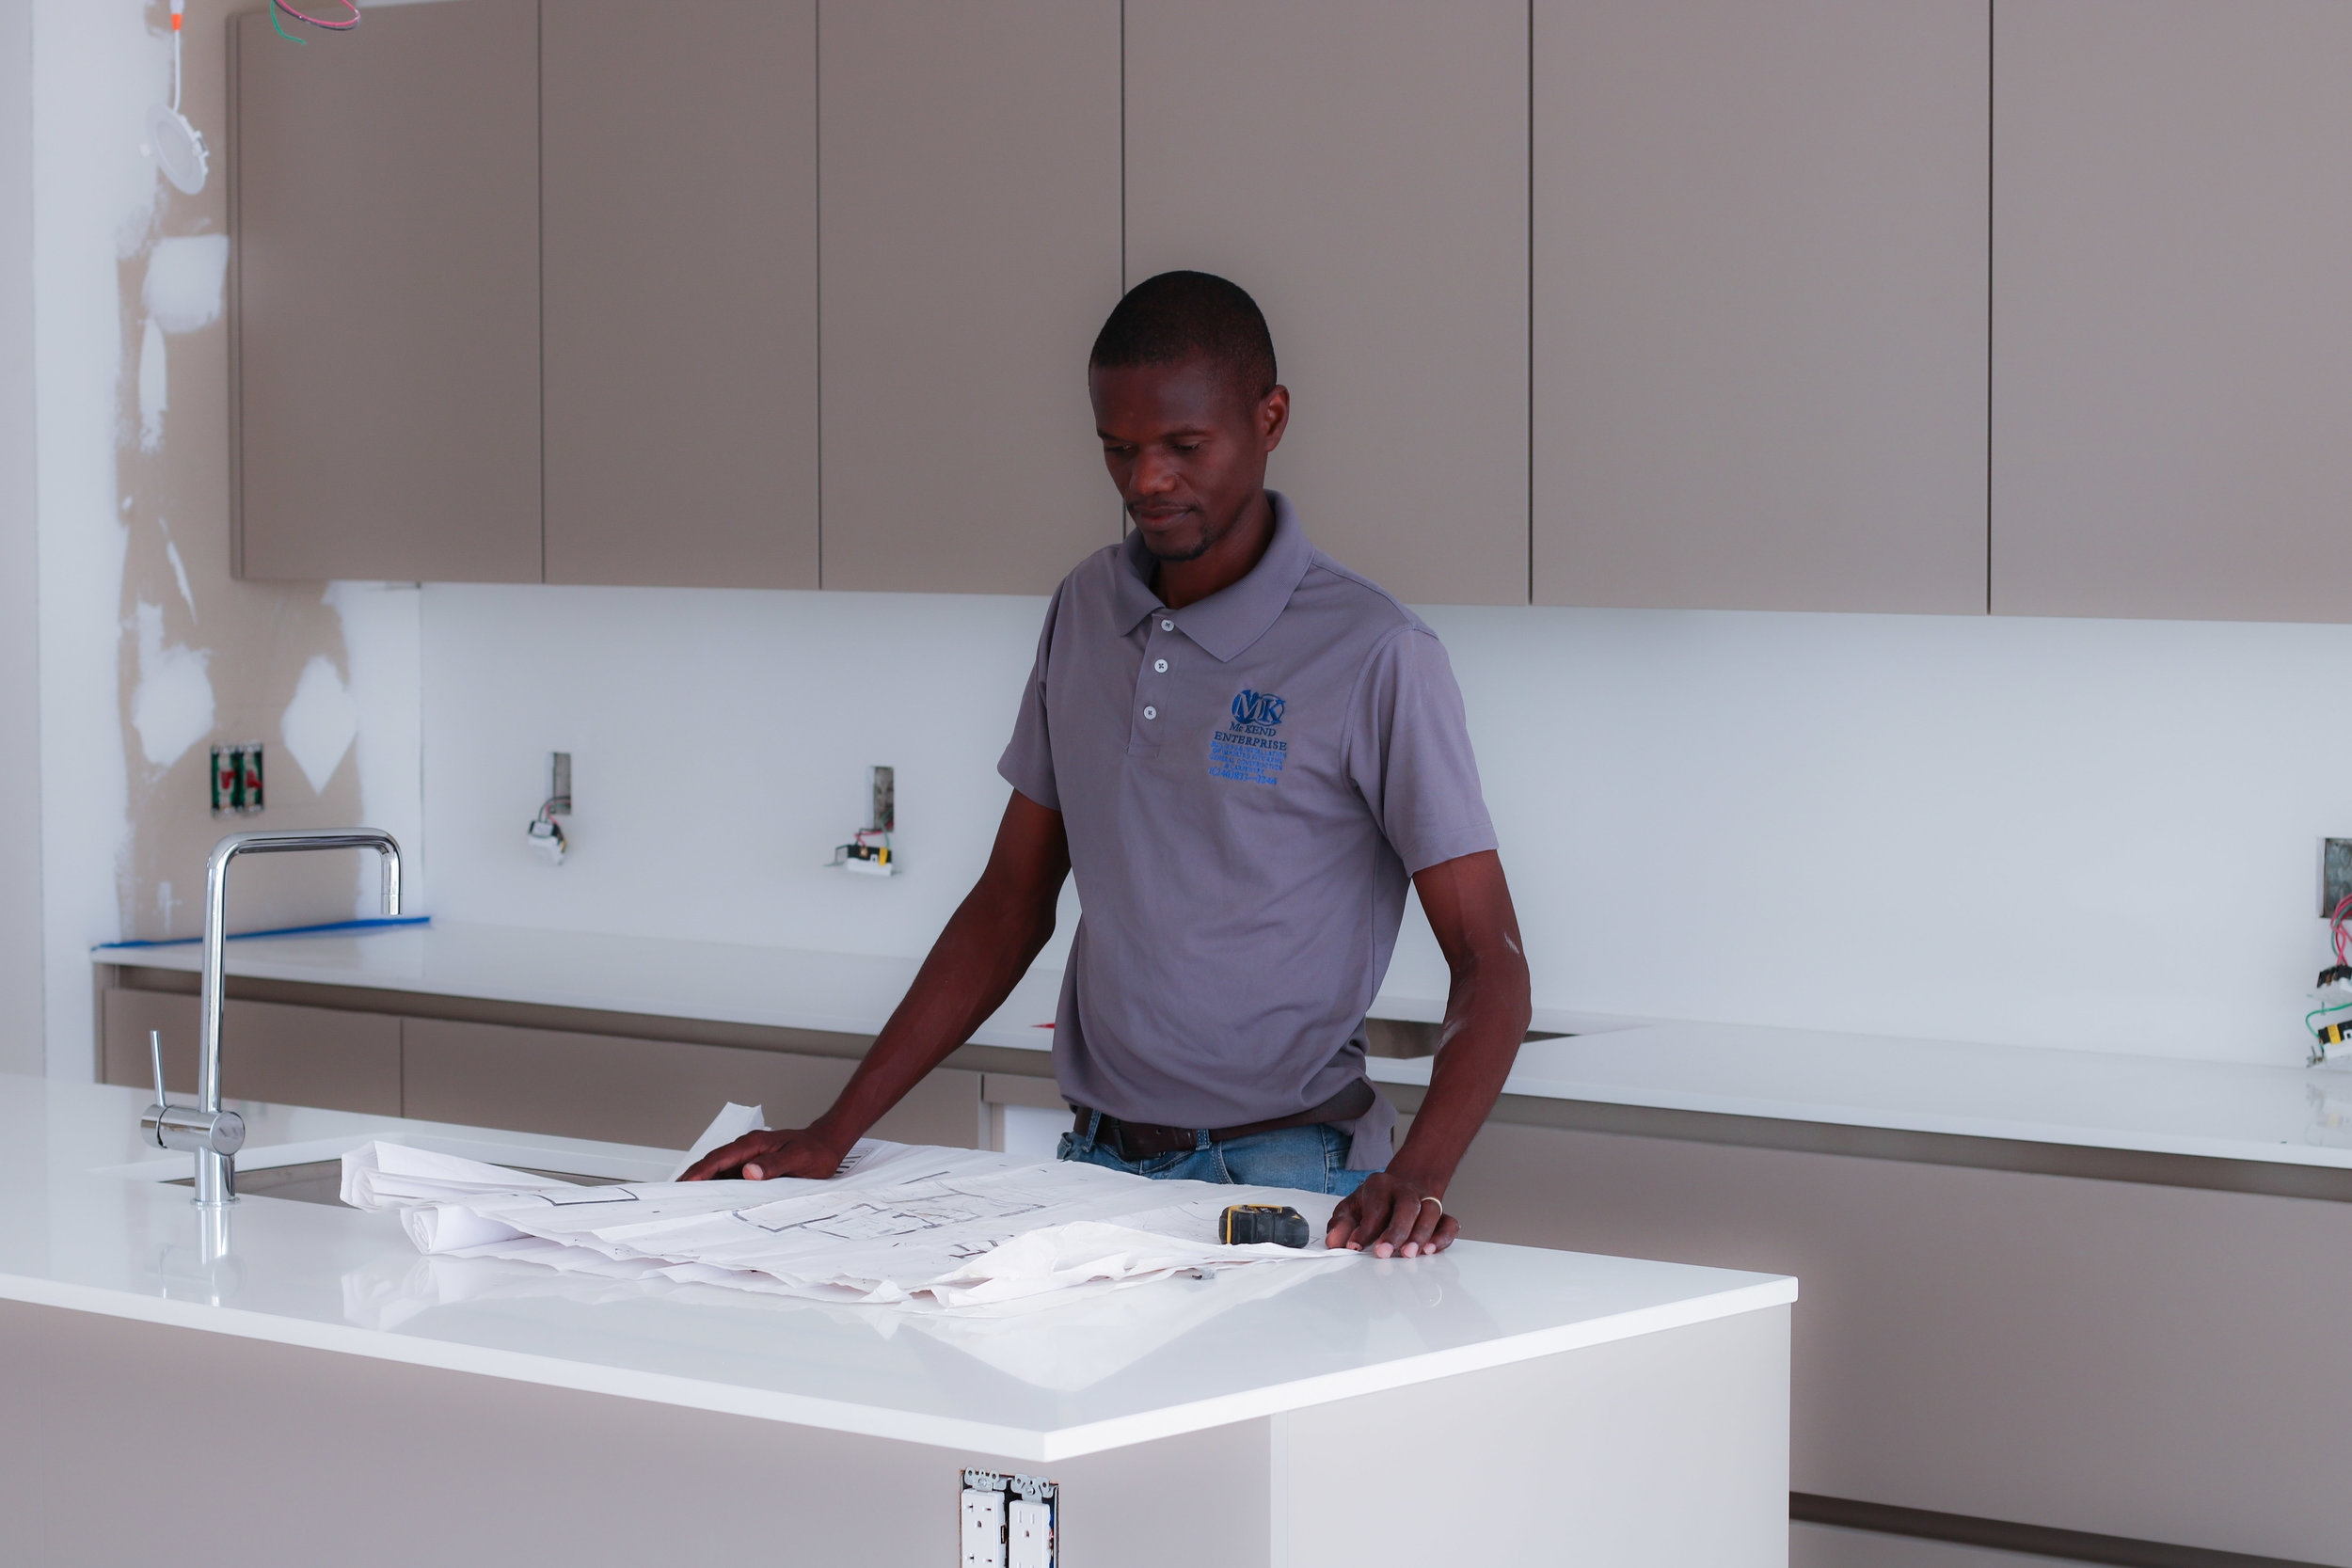 Seon examines the plans for one of his kitchen installations.